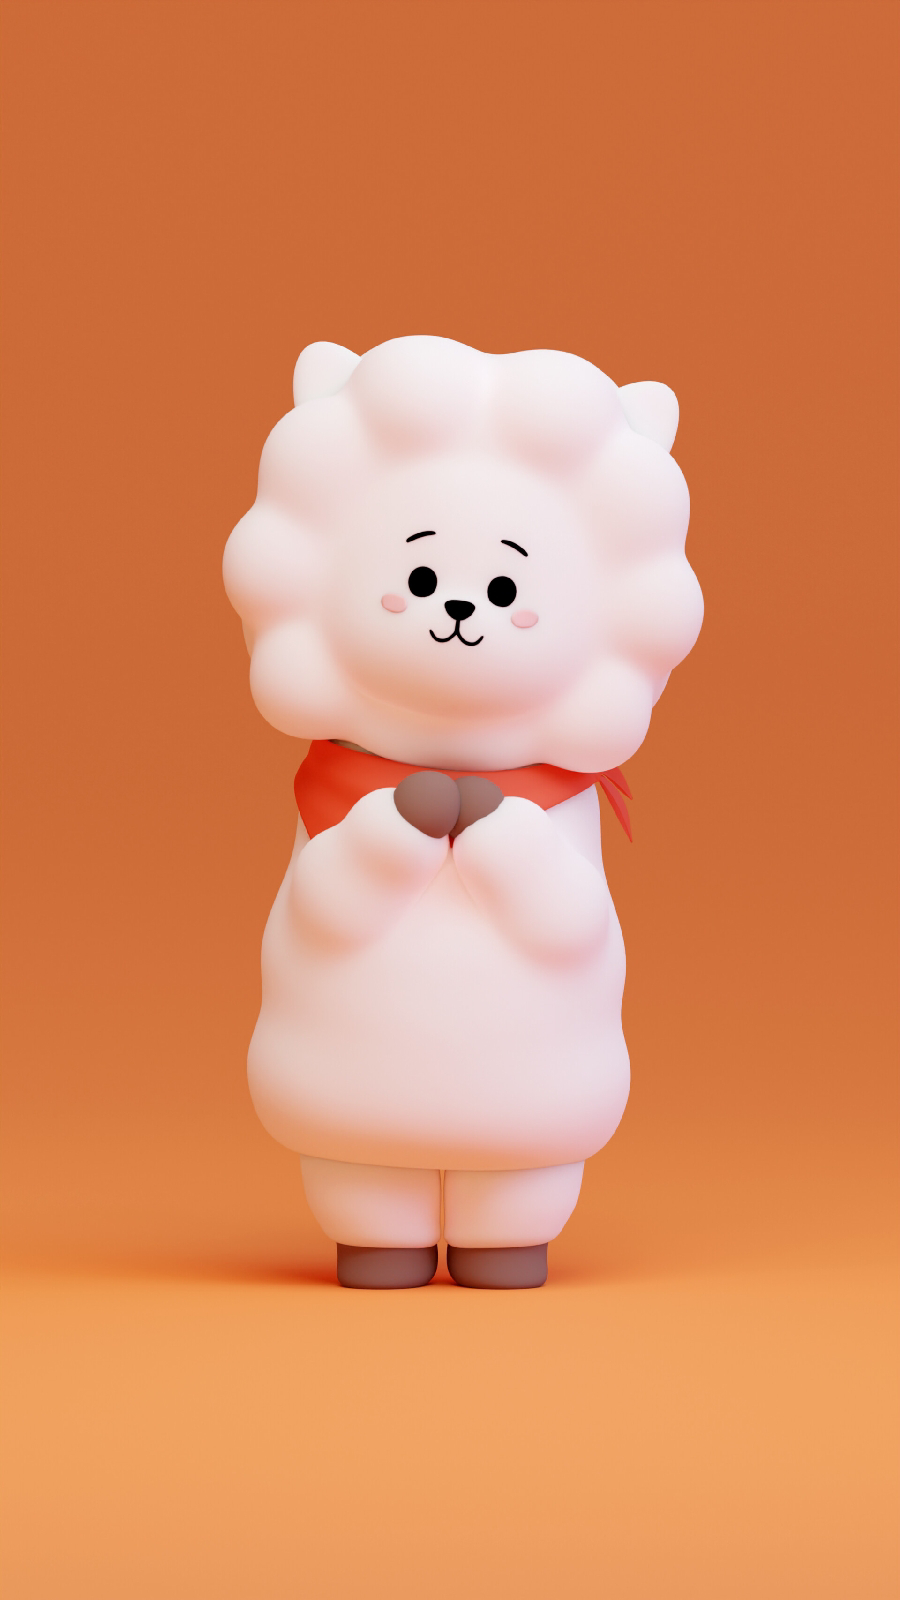 Download Wallpaper RJ BT21 Wallpaper Character